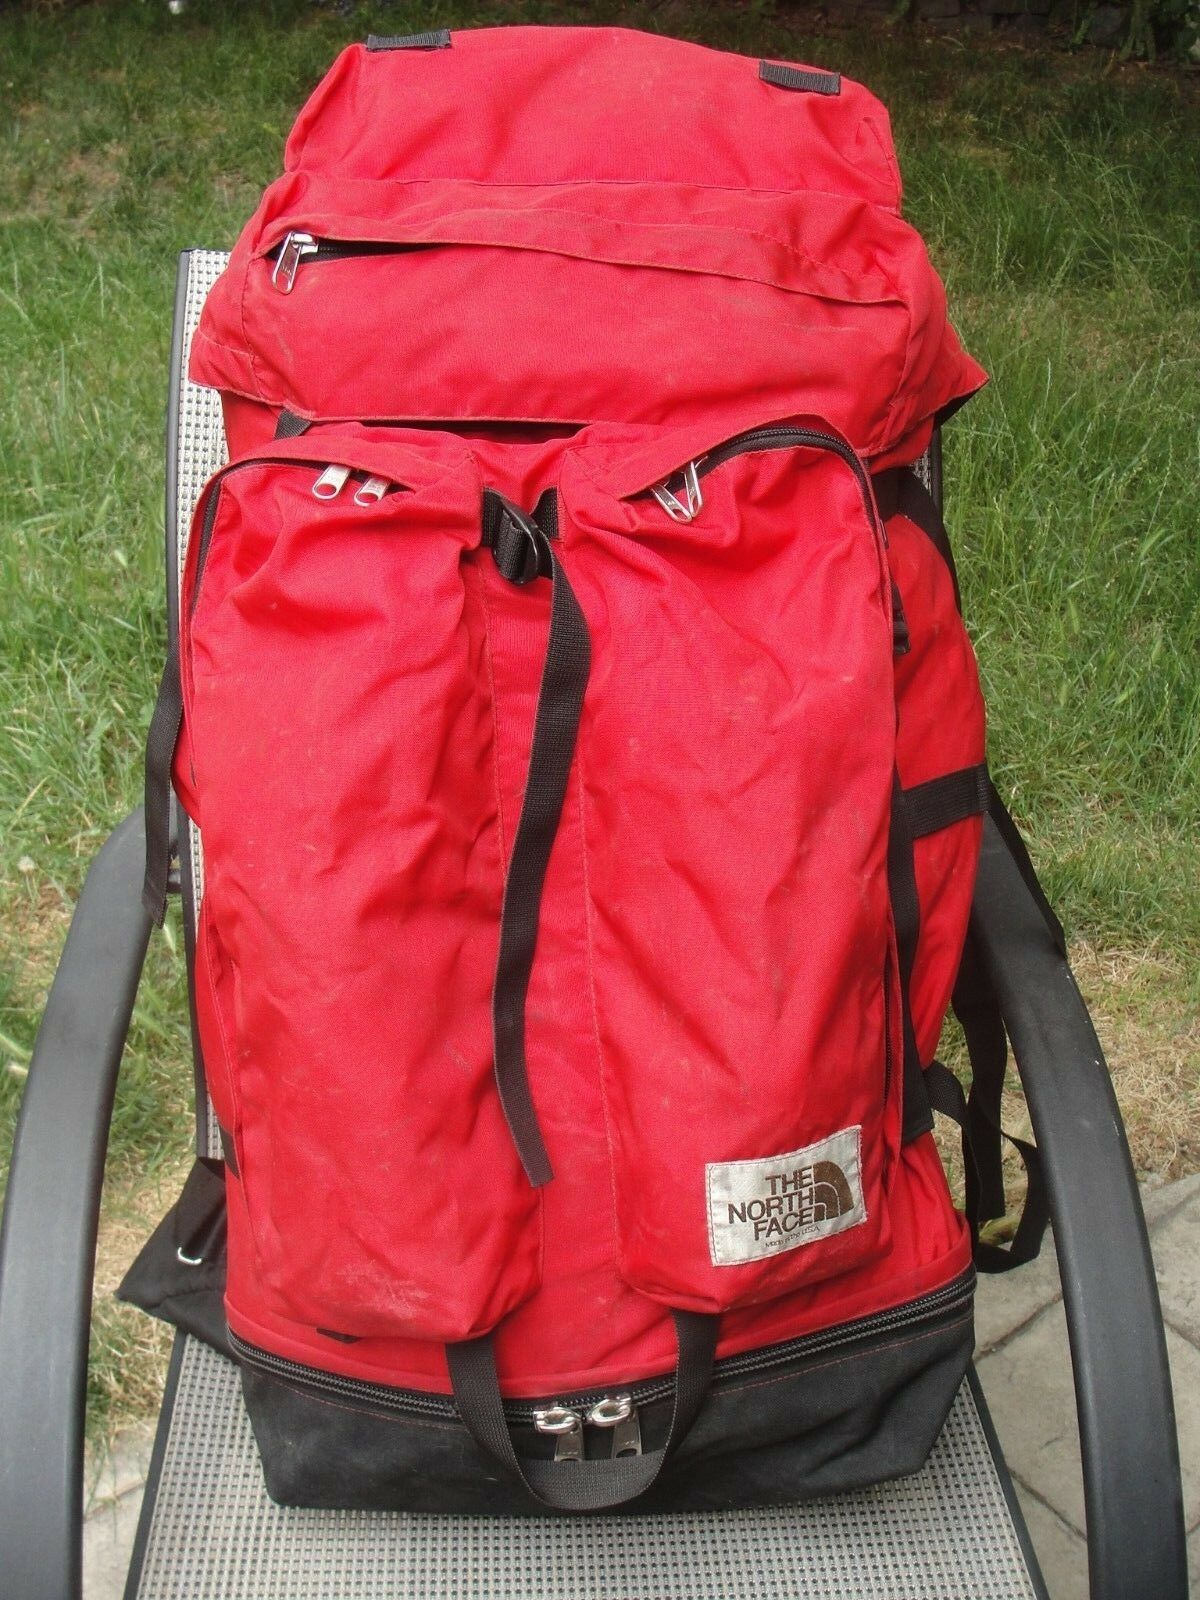 NORTH FACE BACKPACK Marronee tag hire back pack internal frame mountaineering the